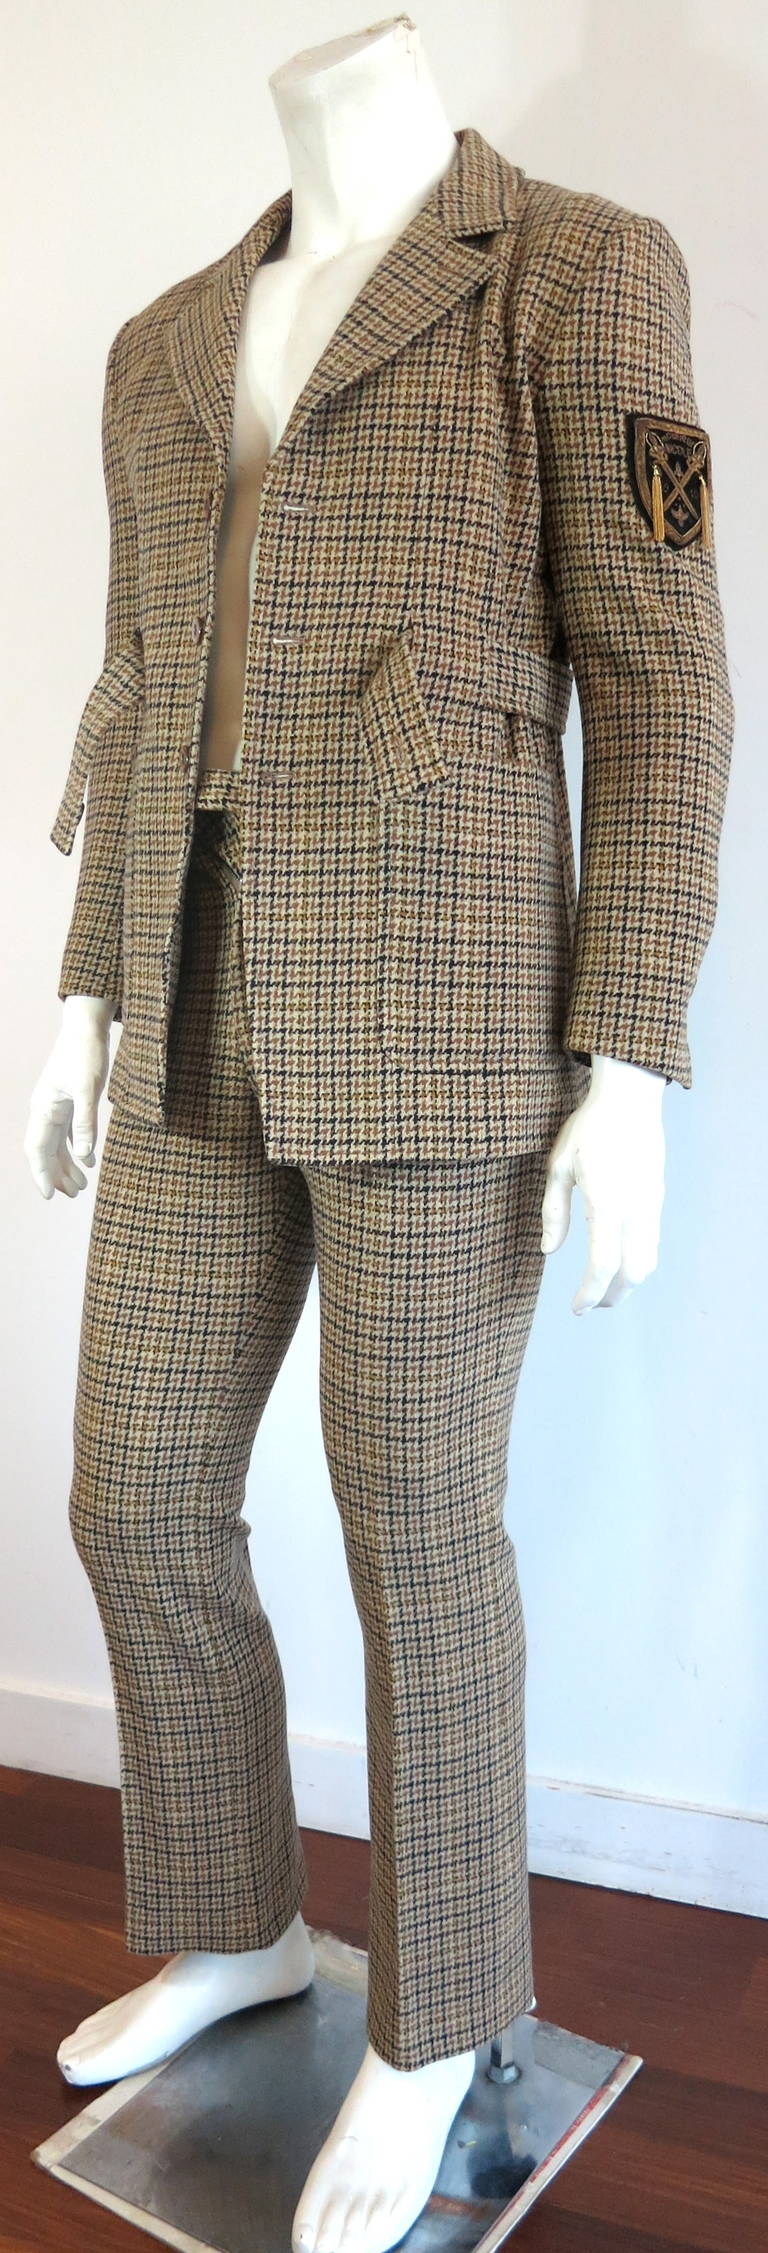 Vintage MATSUDA 'Monsieur Nicole' men's wool suit For Sale ...